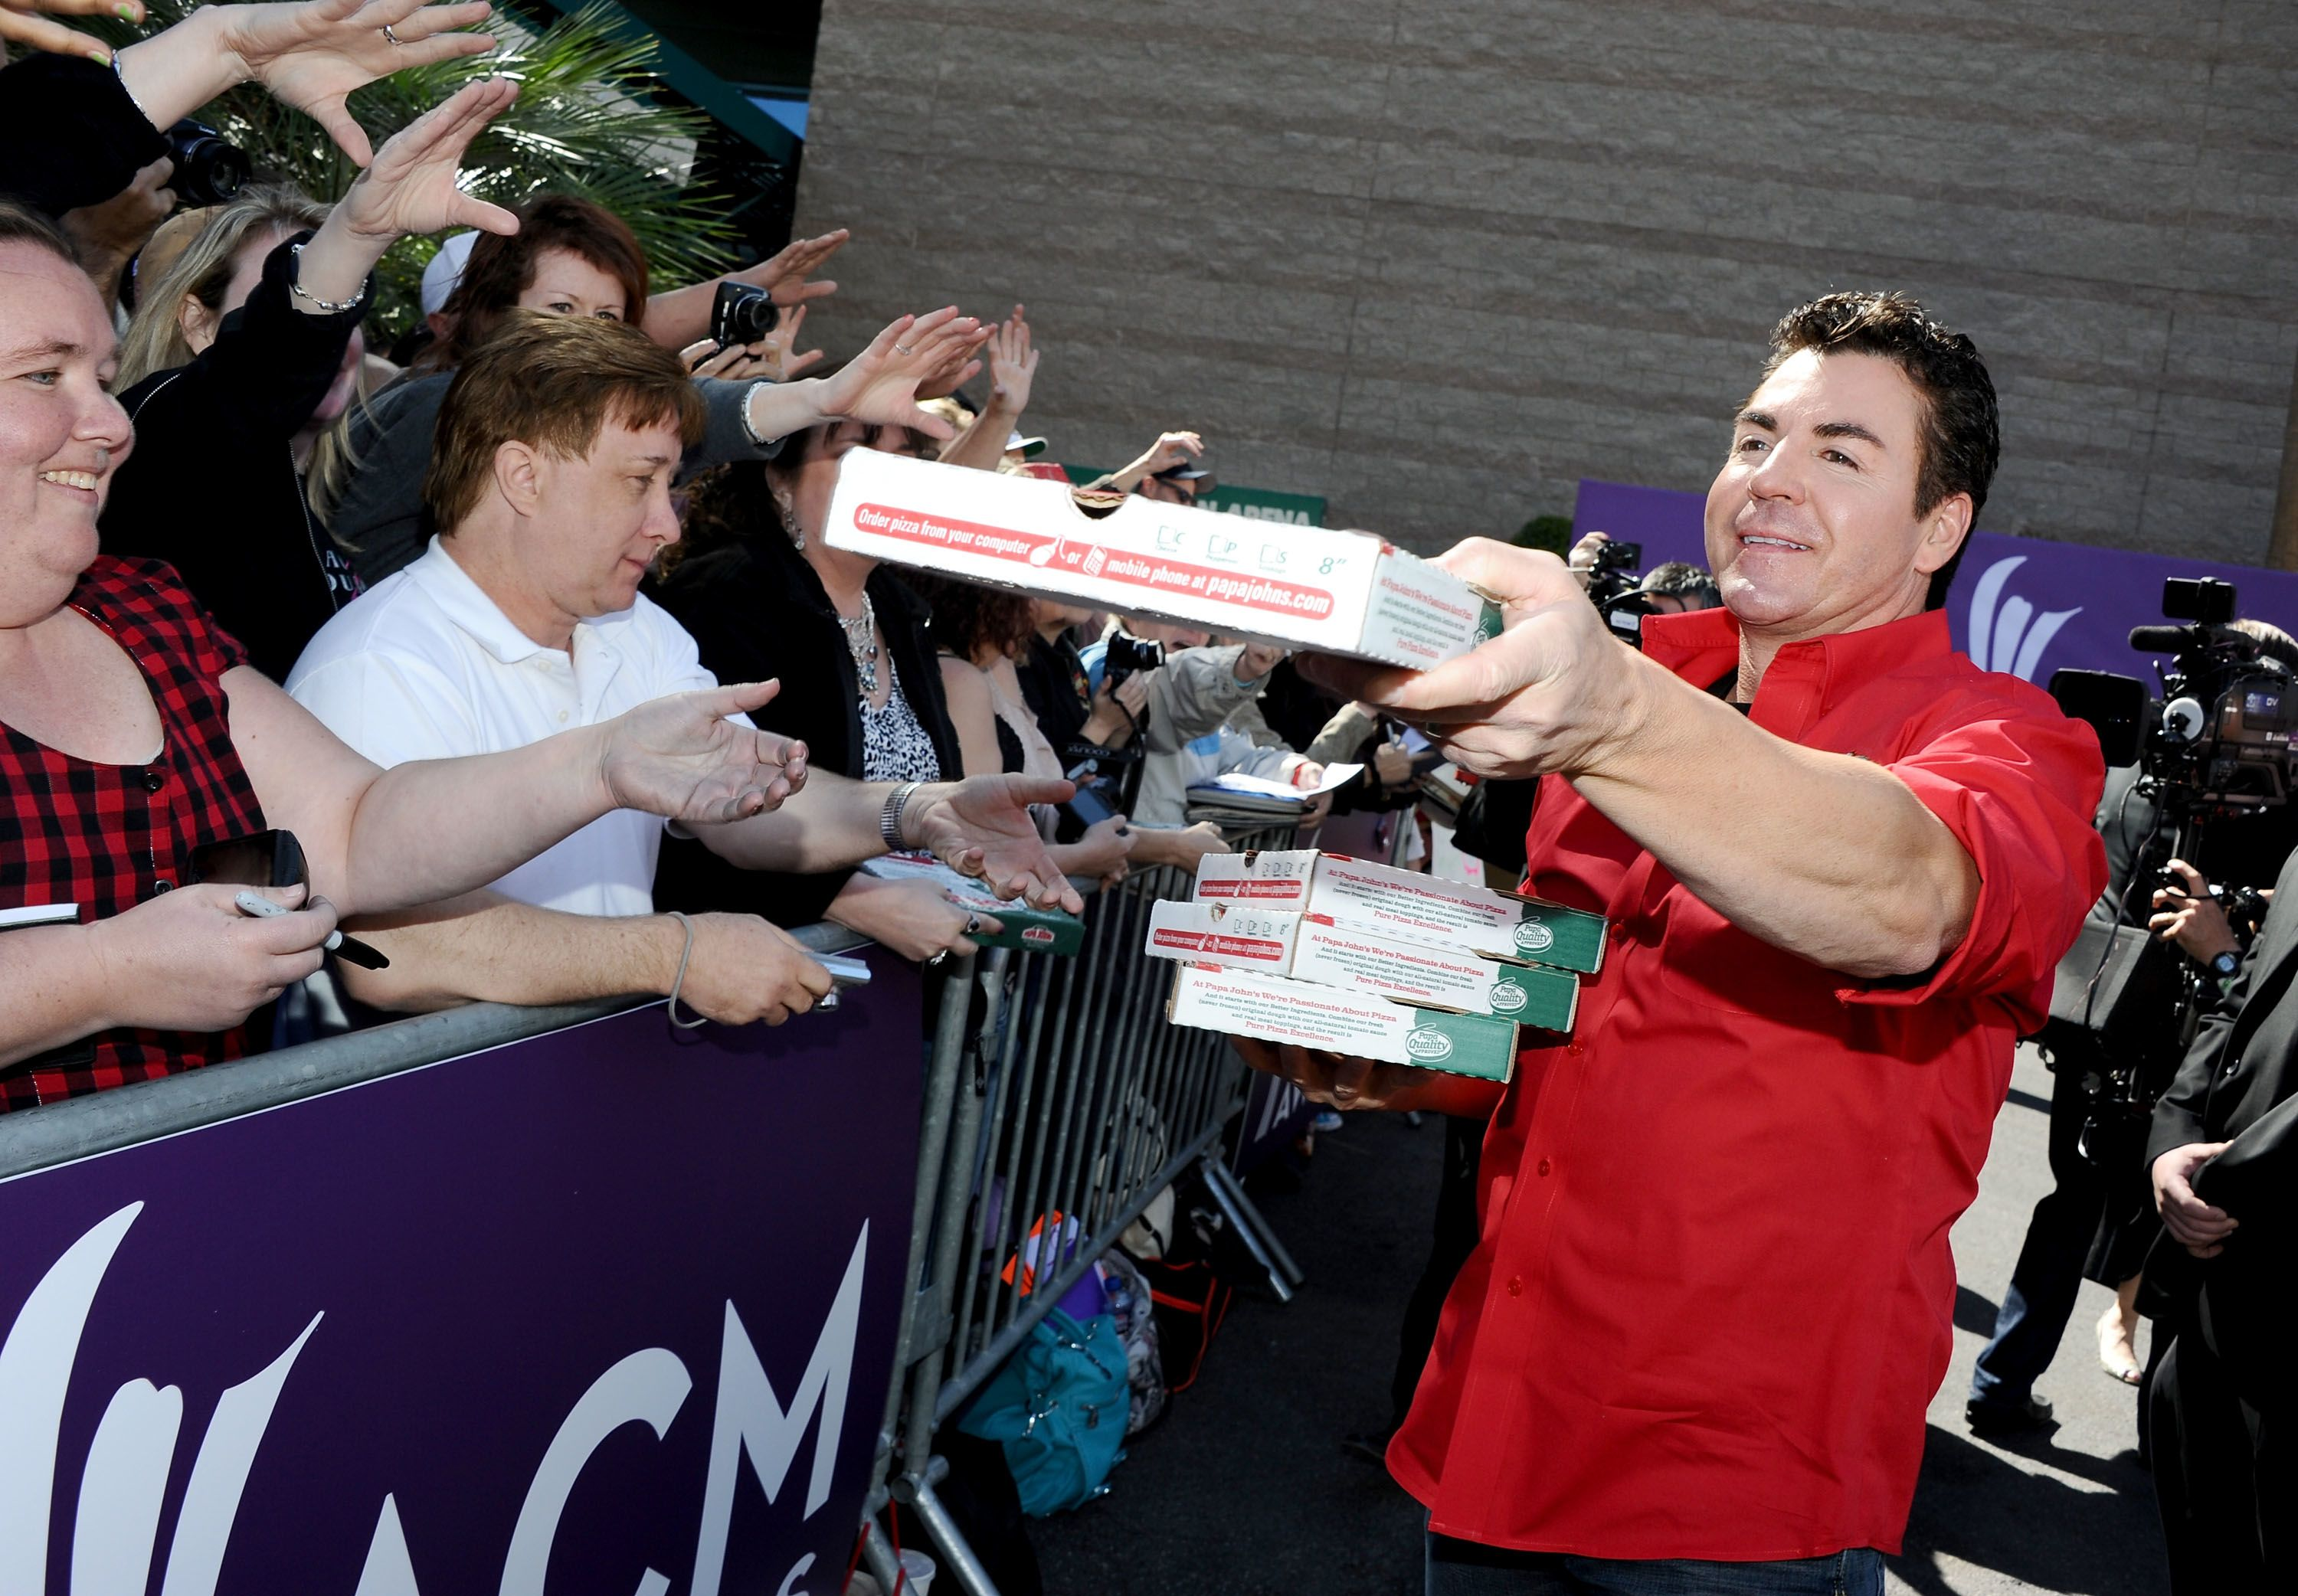 Papa John's founder John Schnatter sells 3.8 million shares